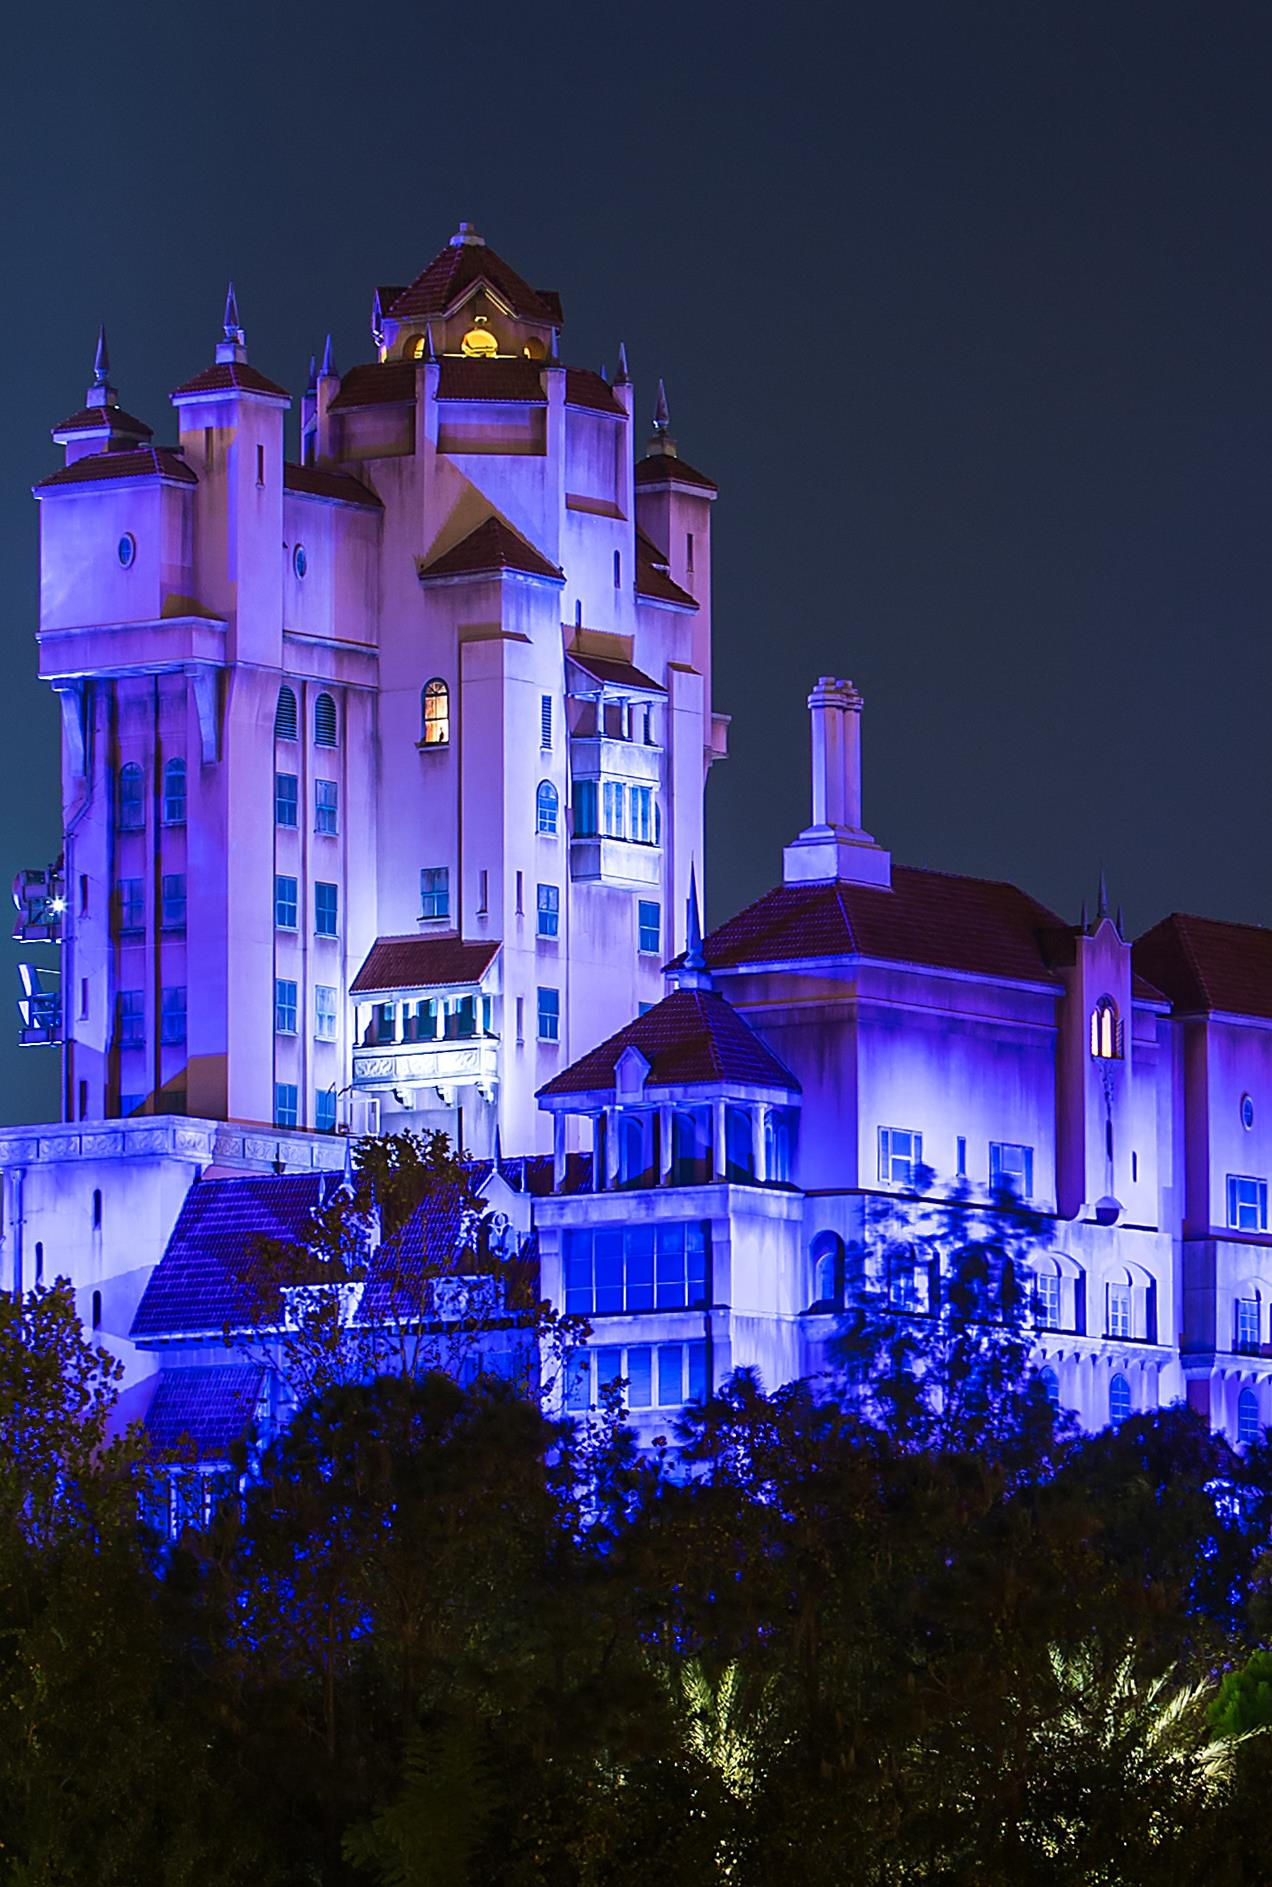 The Tower of Terror at night